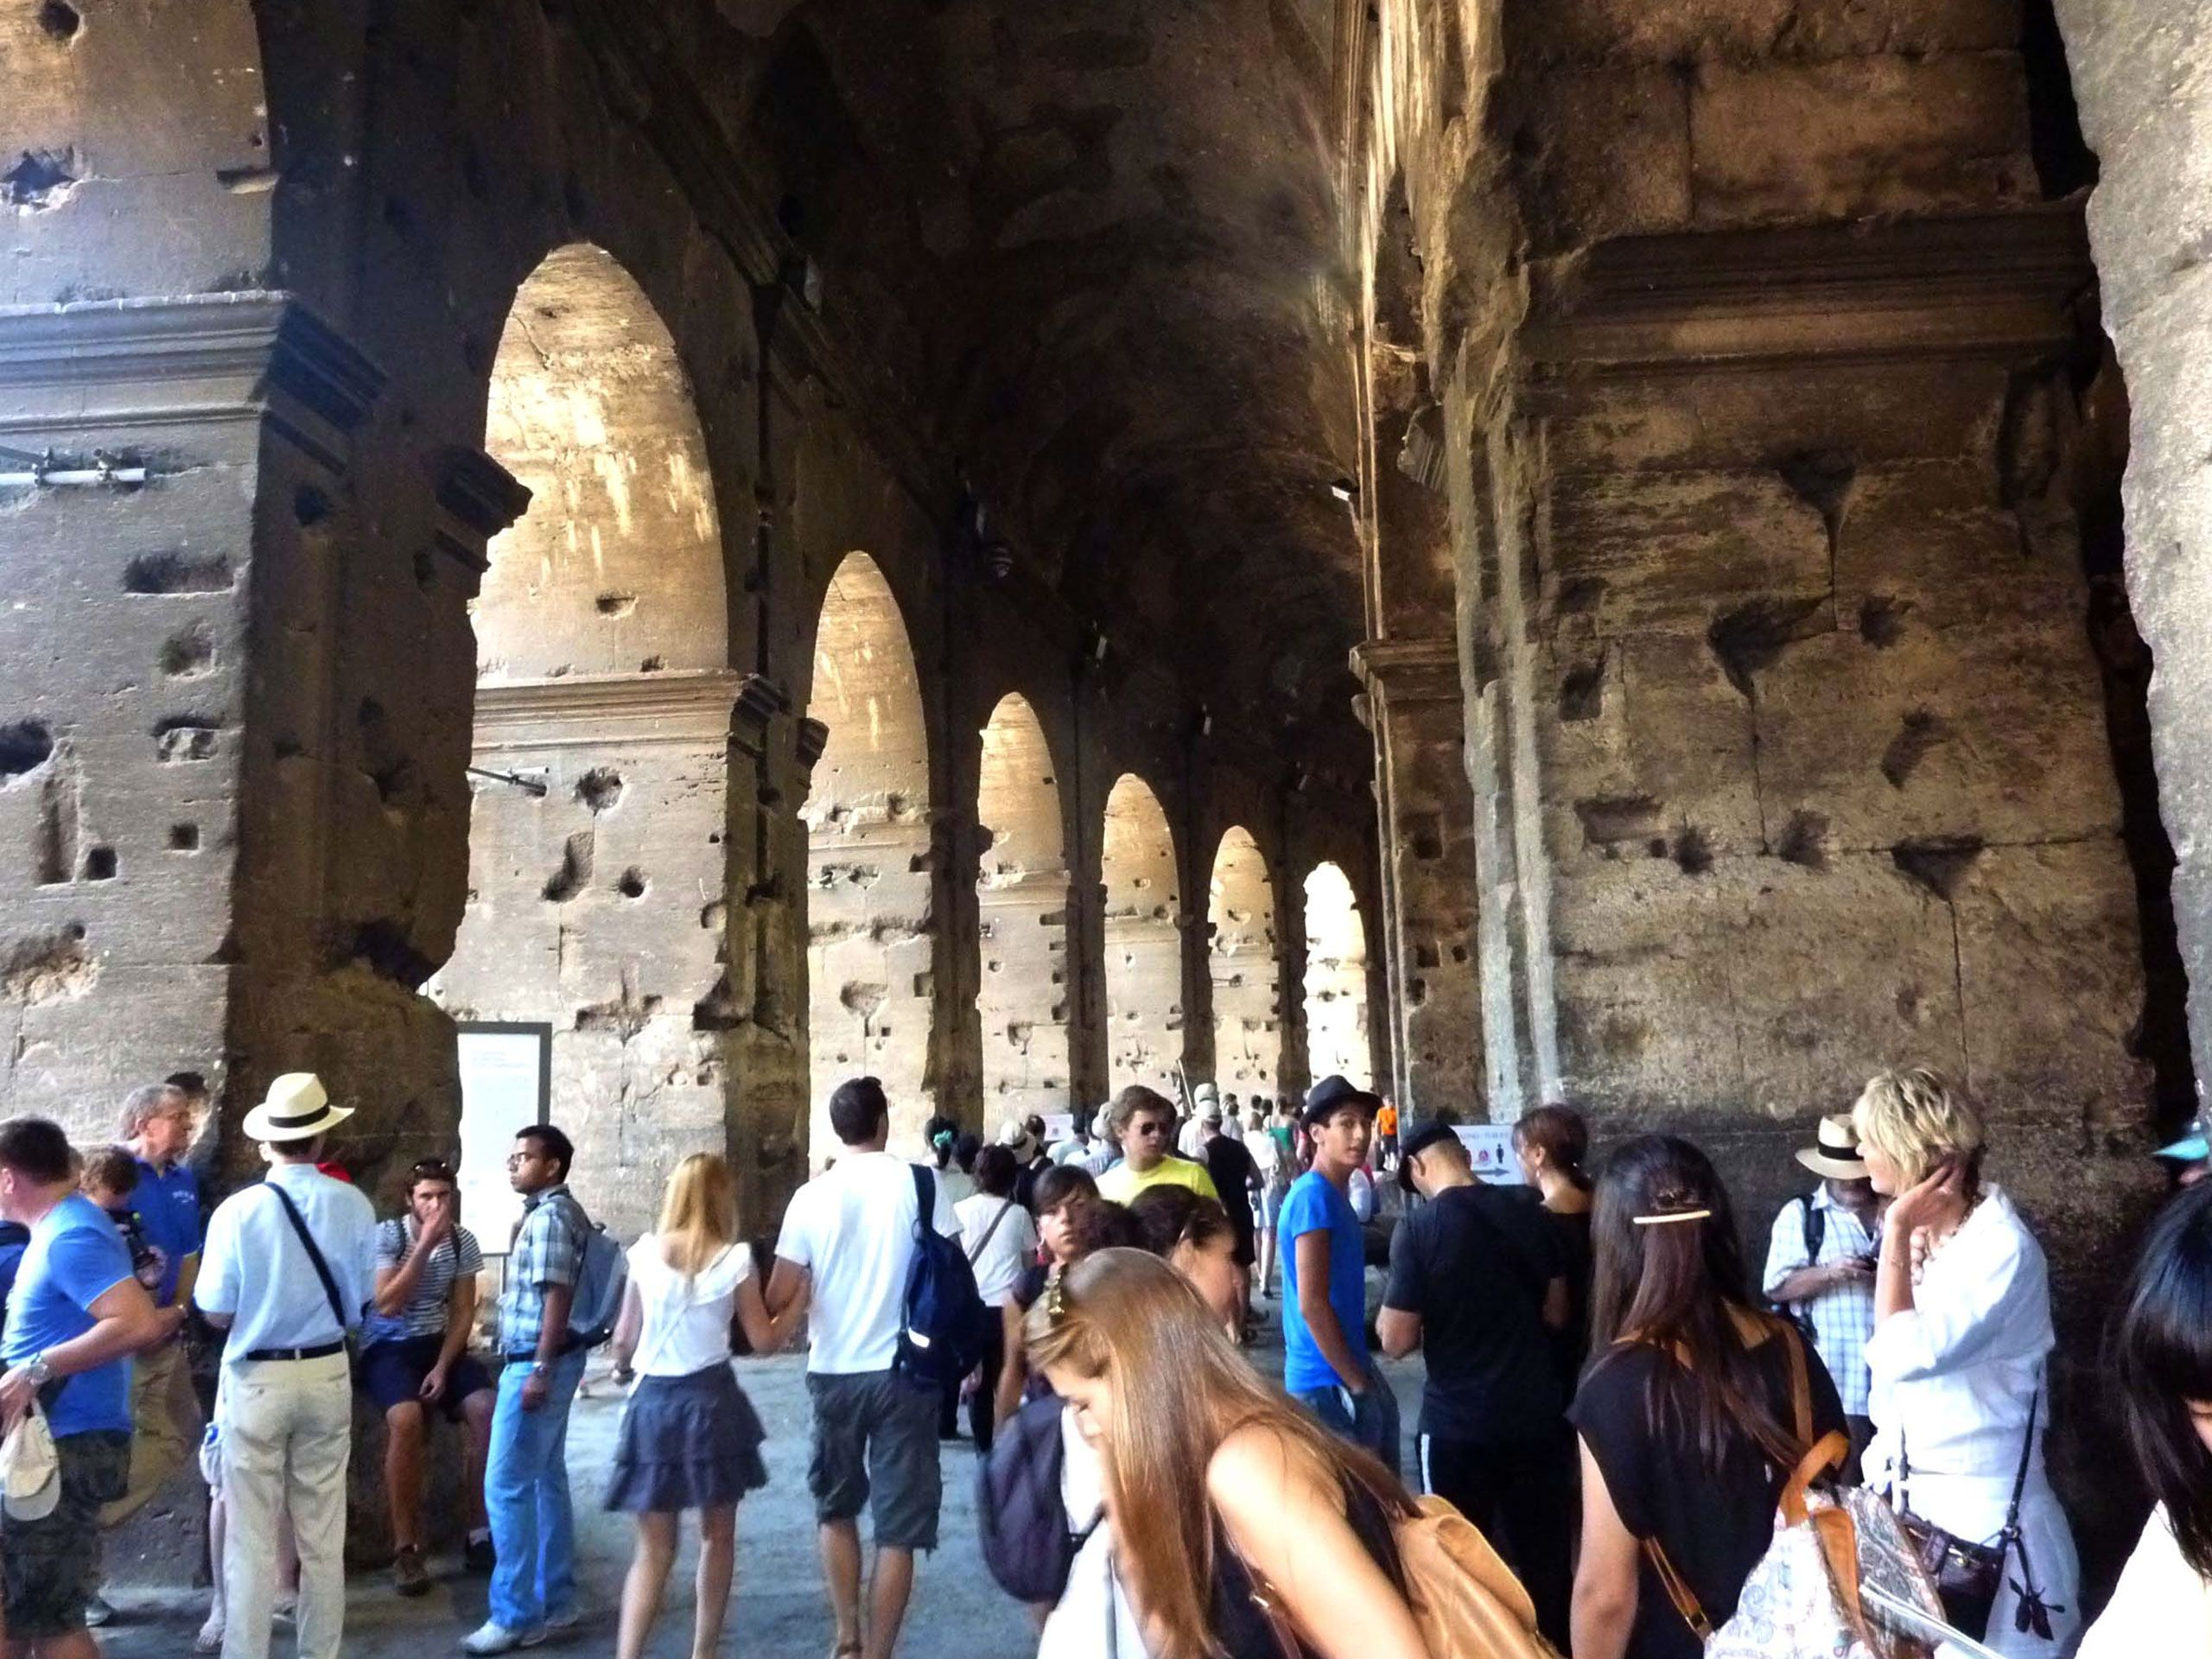 Inside the Colosseum today